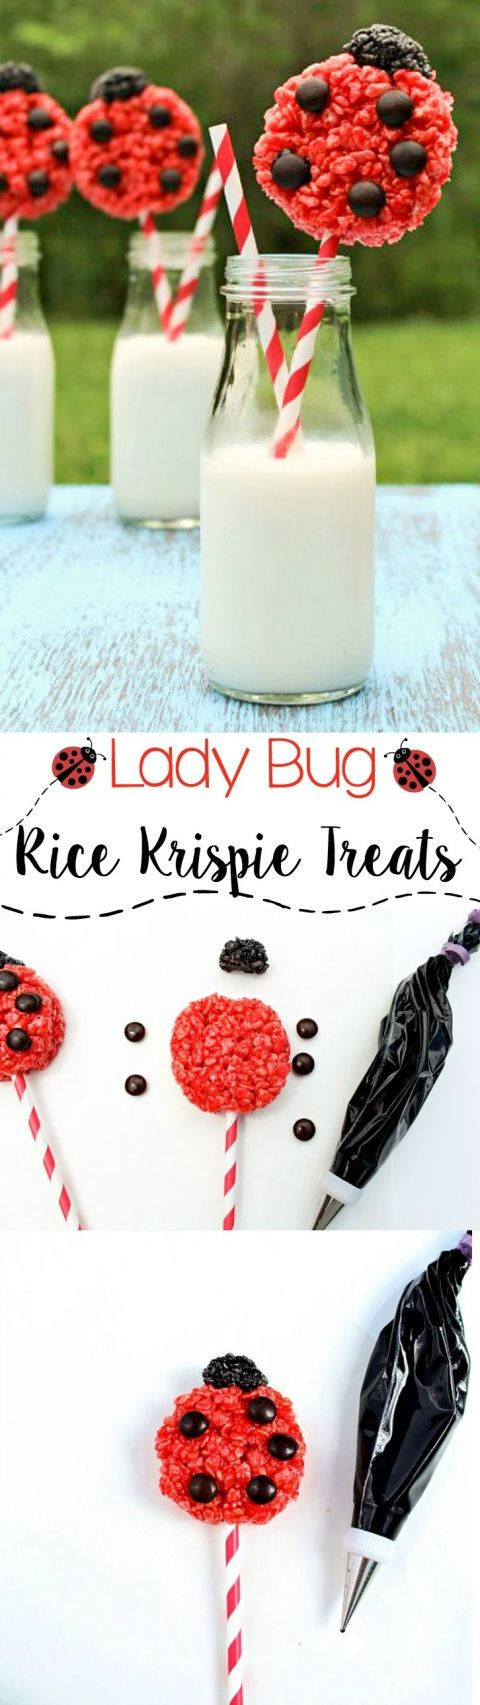 Easy-Rice-Krispie-Lady-Bug-Treats-via-www.thebearfootbaker